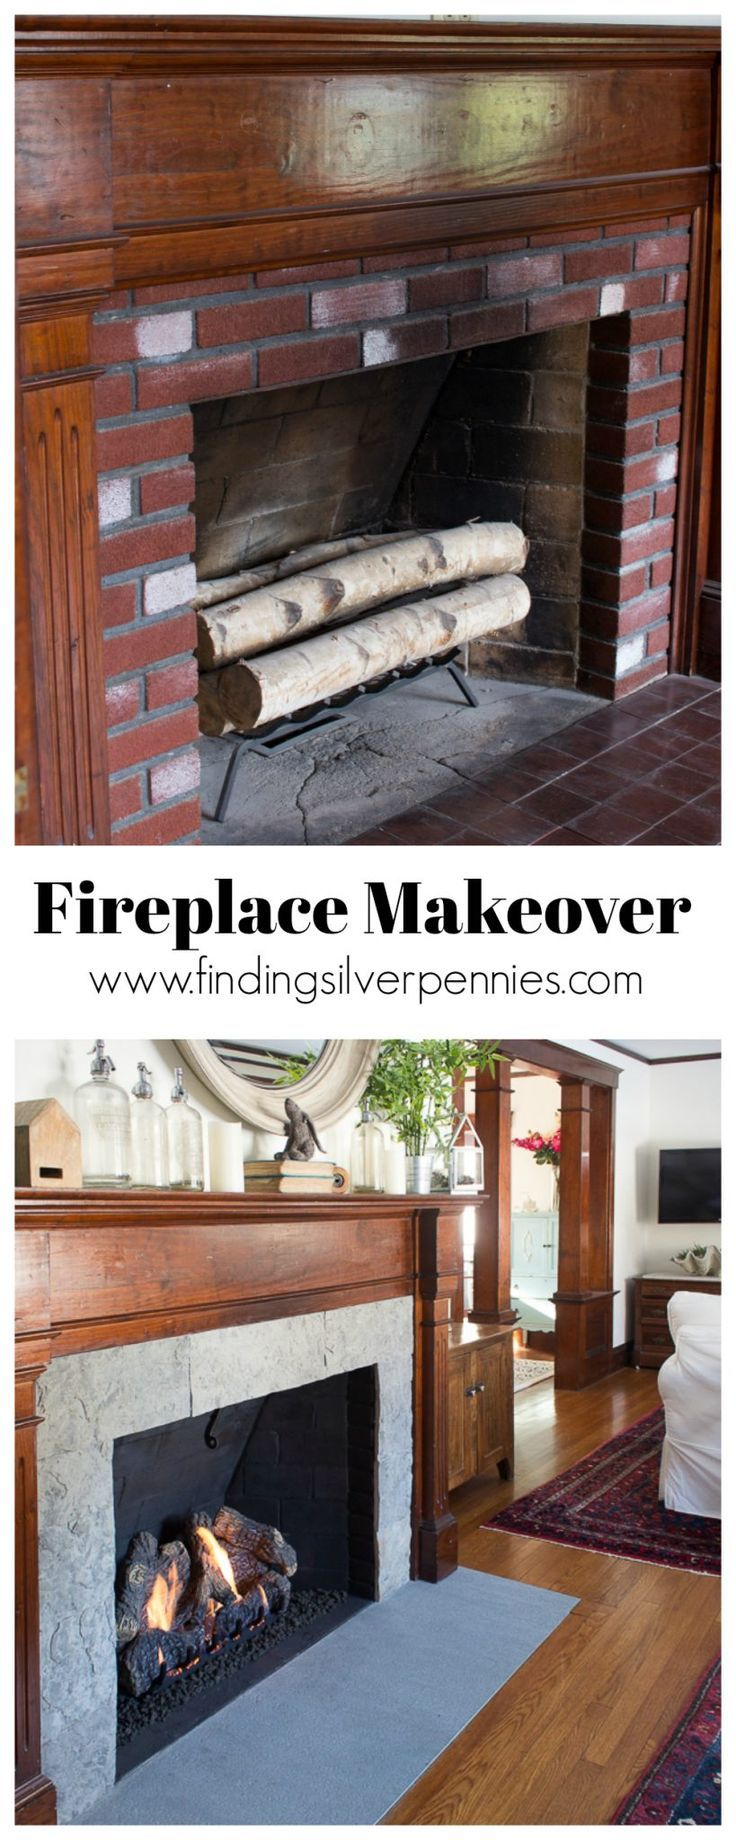 Fireplace makeover dyi decor pinterest diy wooden diy and